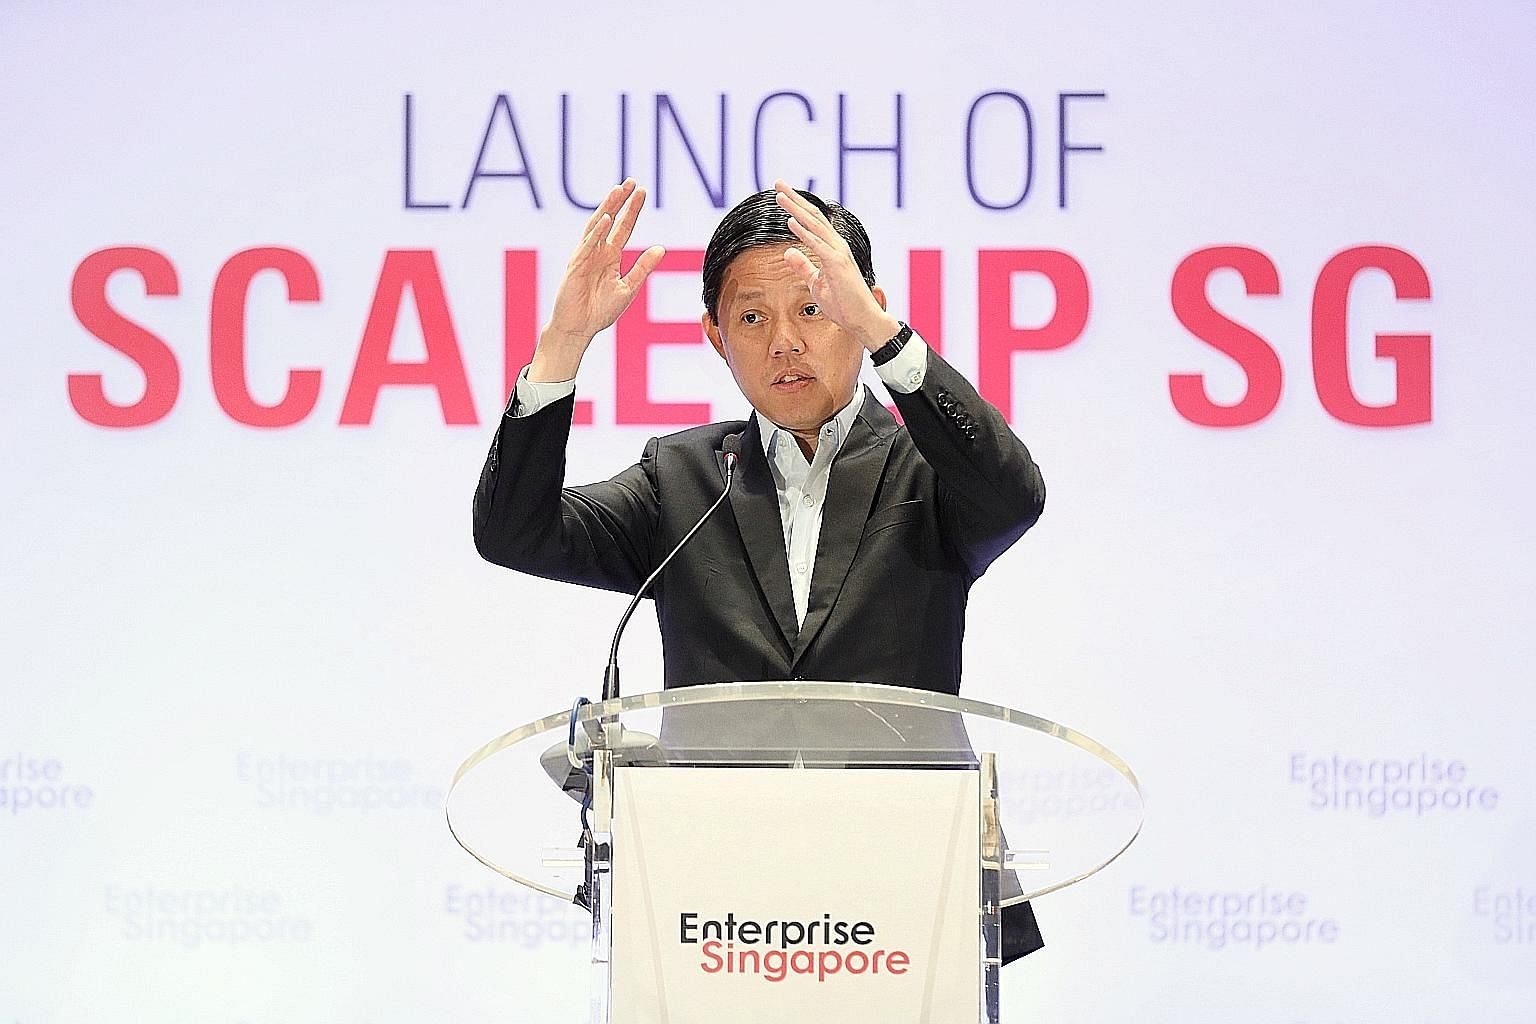 Trade and Industry Minister Chan Chun Sing speaking at the launch of the Scale-up programme yesterday. He urged firms that have been given a leg-up to create better jobs.